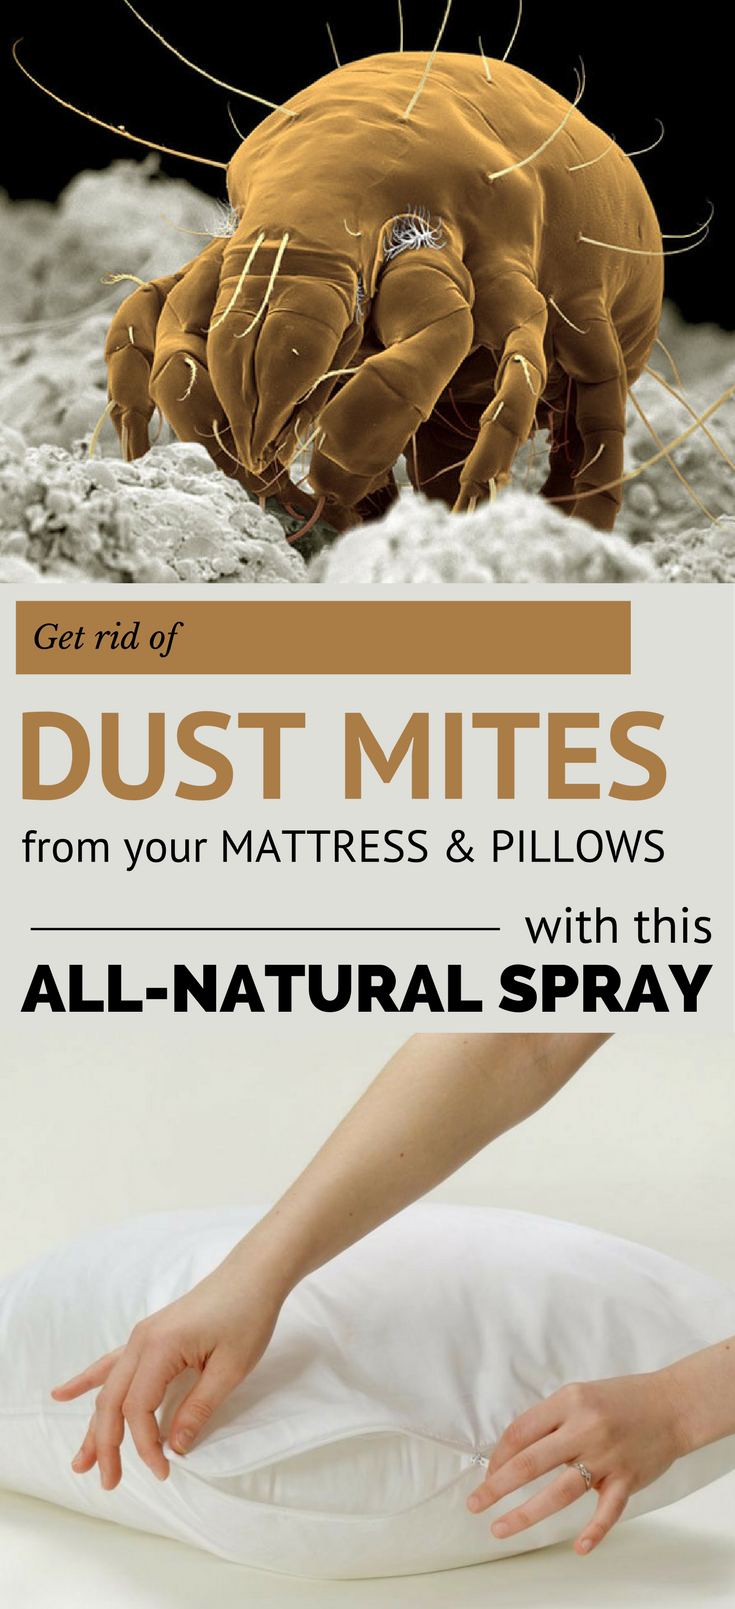 Get Rid Of Dust Mites From Your Mattress And Pillows With This All Natural Spray 101cleaningtips Net Dust Mites Dust Mites Mattress Dust Mite Spray